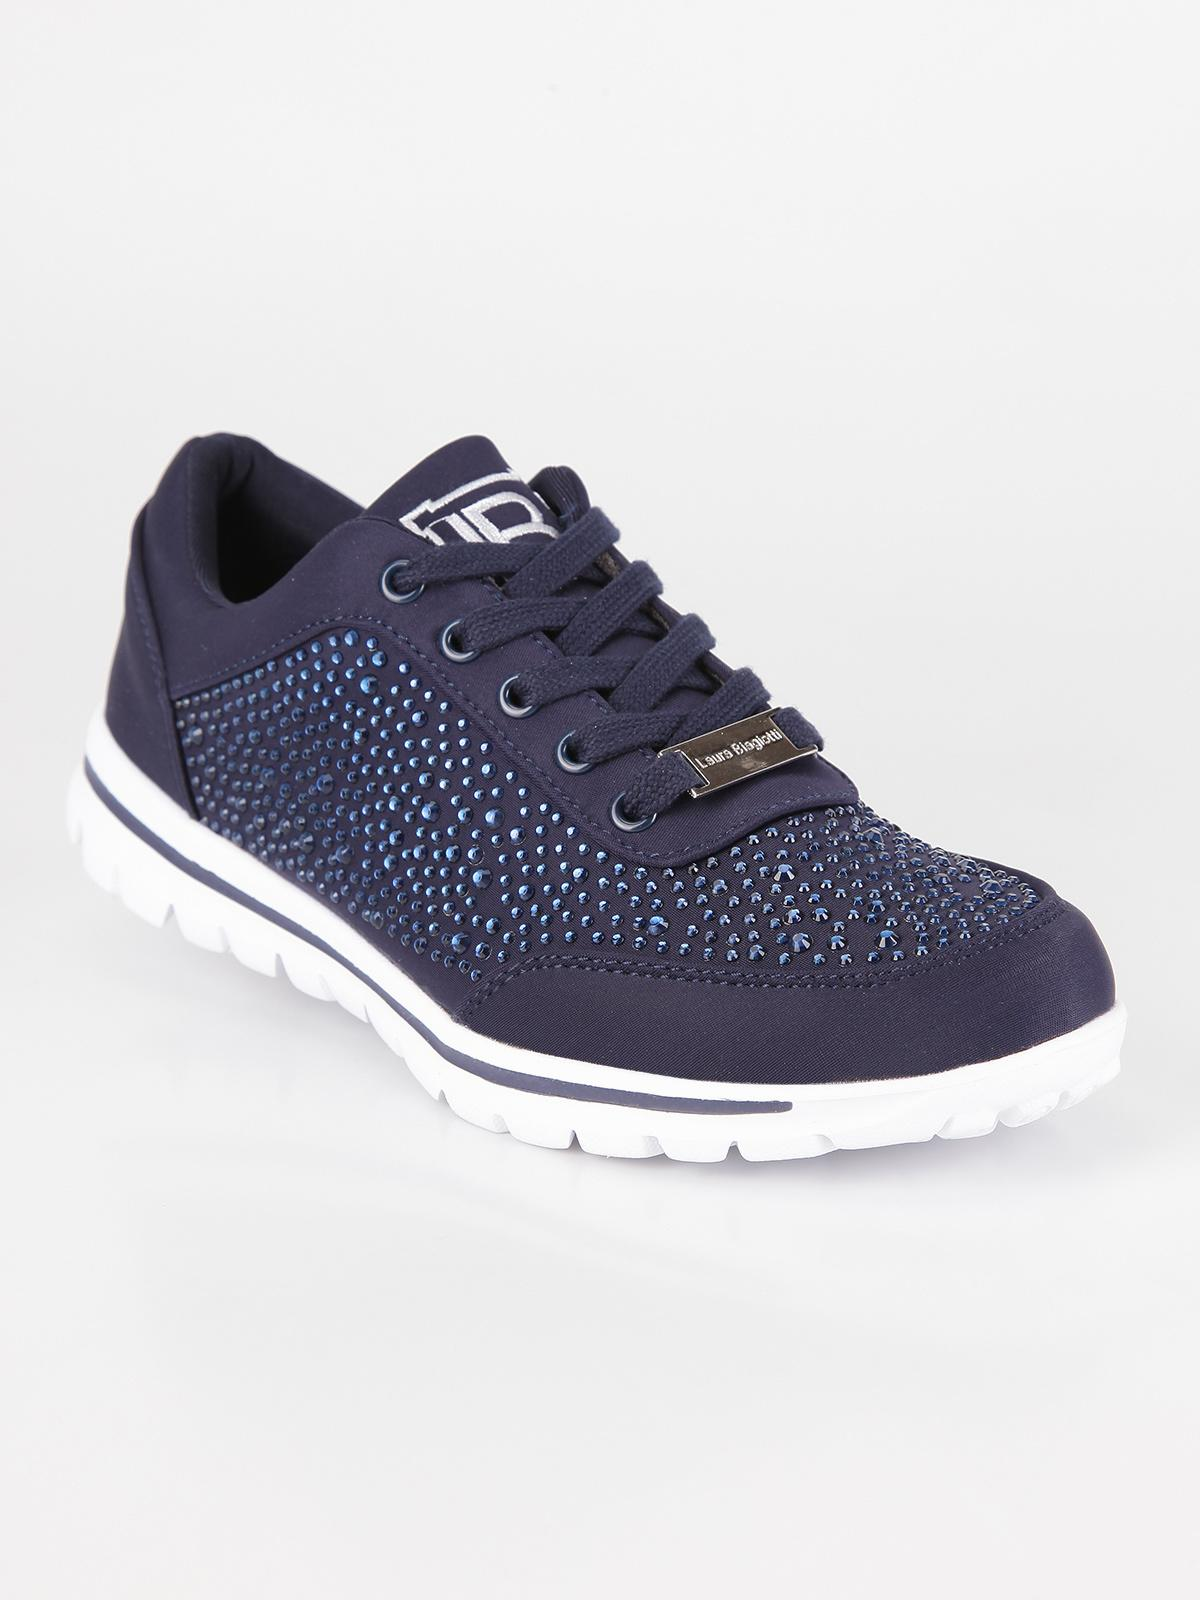 official photos 054d7 293fd Sneakers estive con strass - Blu laura biagiotti | MecShopping